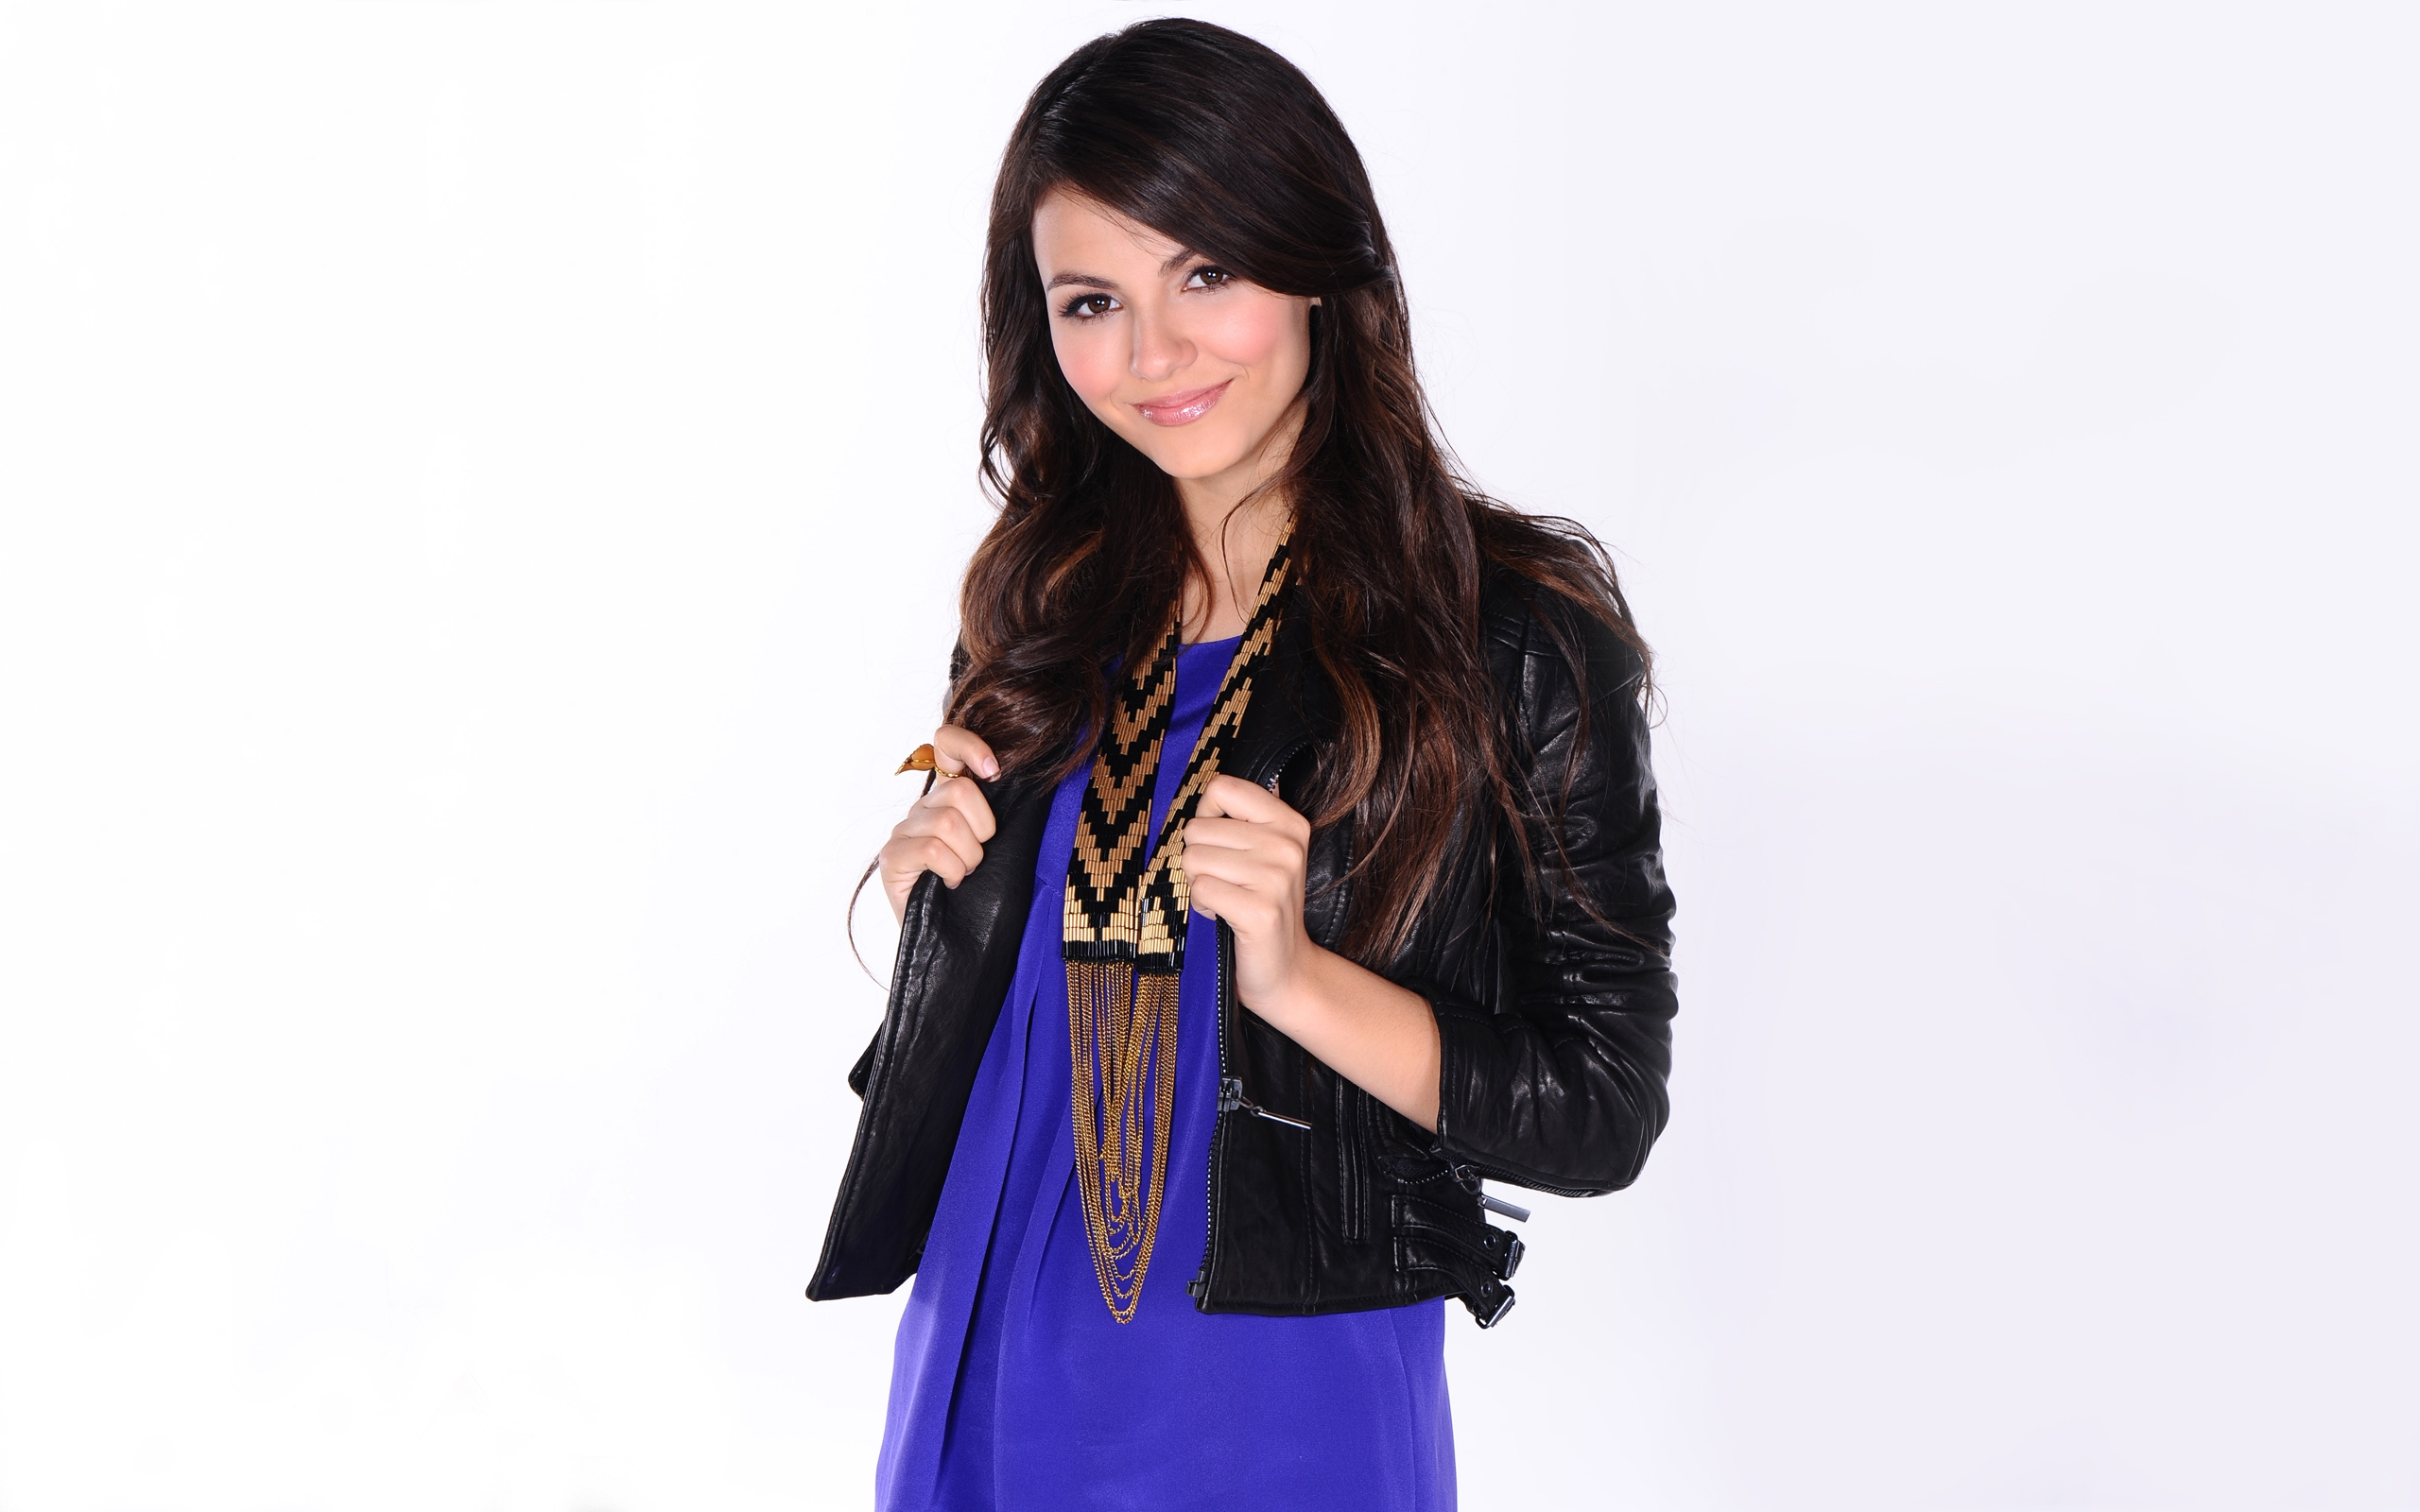 2560x1600 - Victoria Justice Wallpapers 9